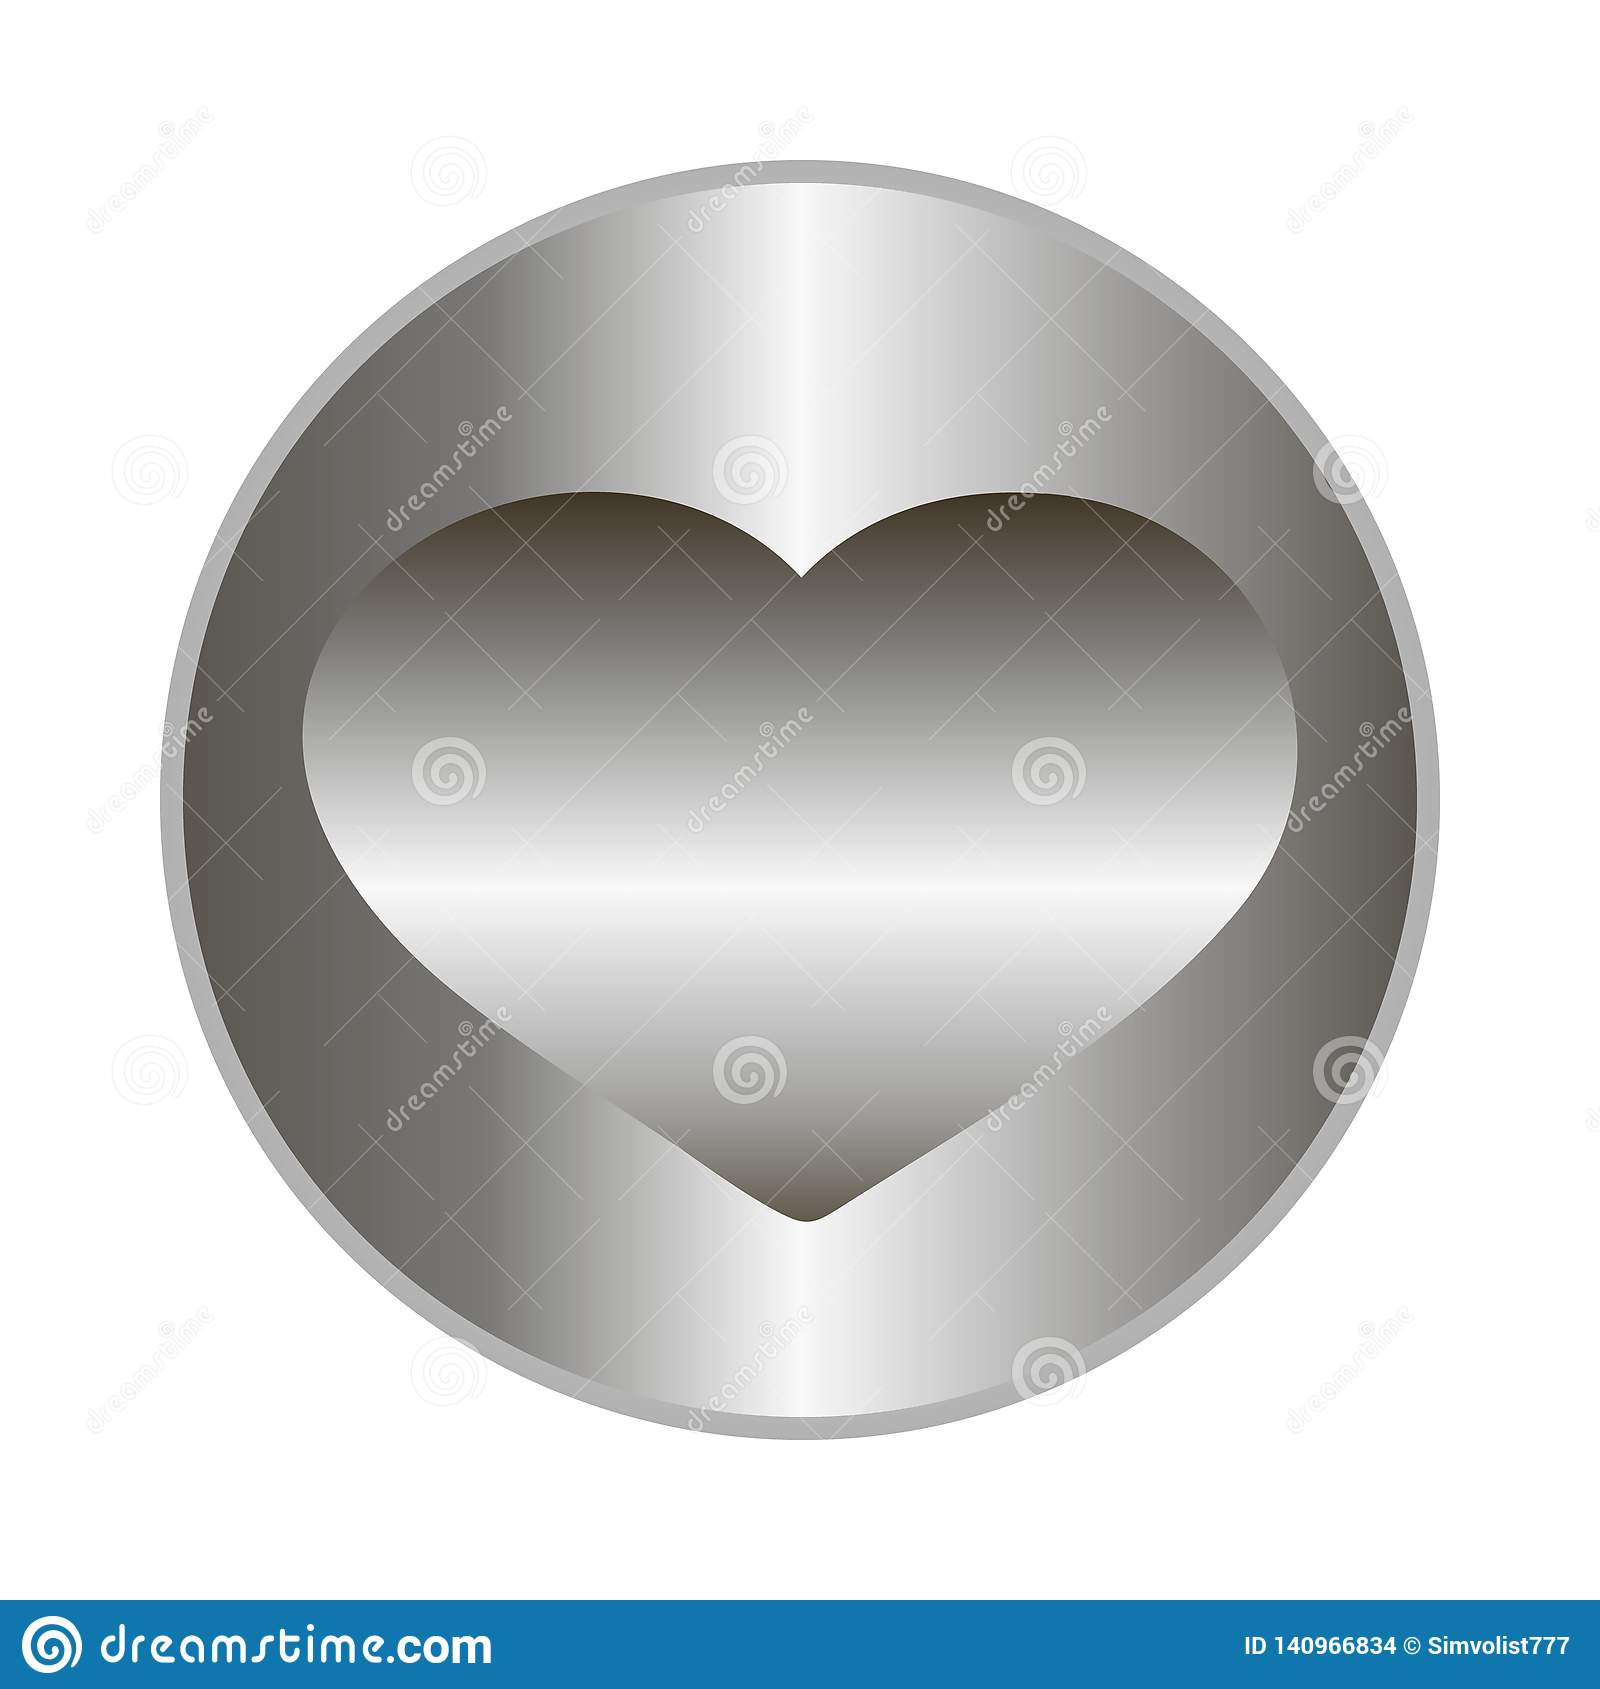 Metal medal with heart. Abstract circle geometric badge, technology button template with metal texture, chrome, silver, steel.